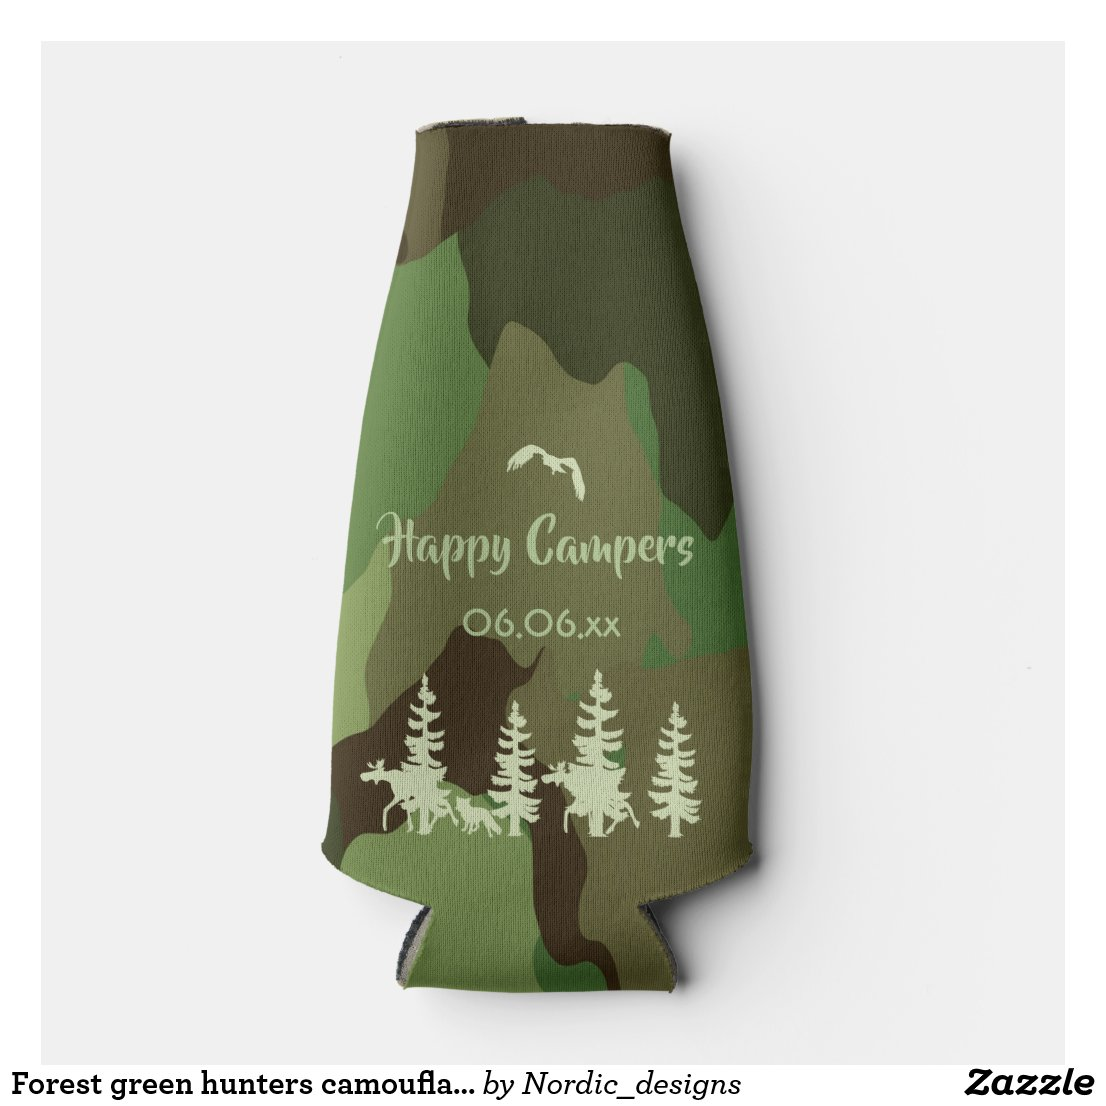 Forest green hunters camouflage and wildlife print